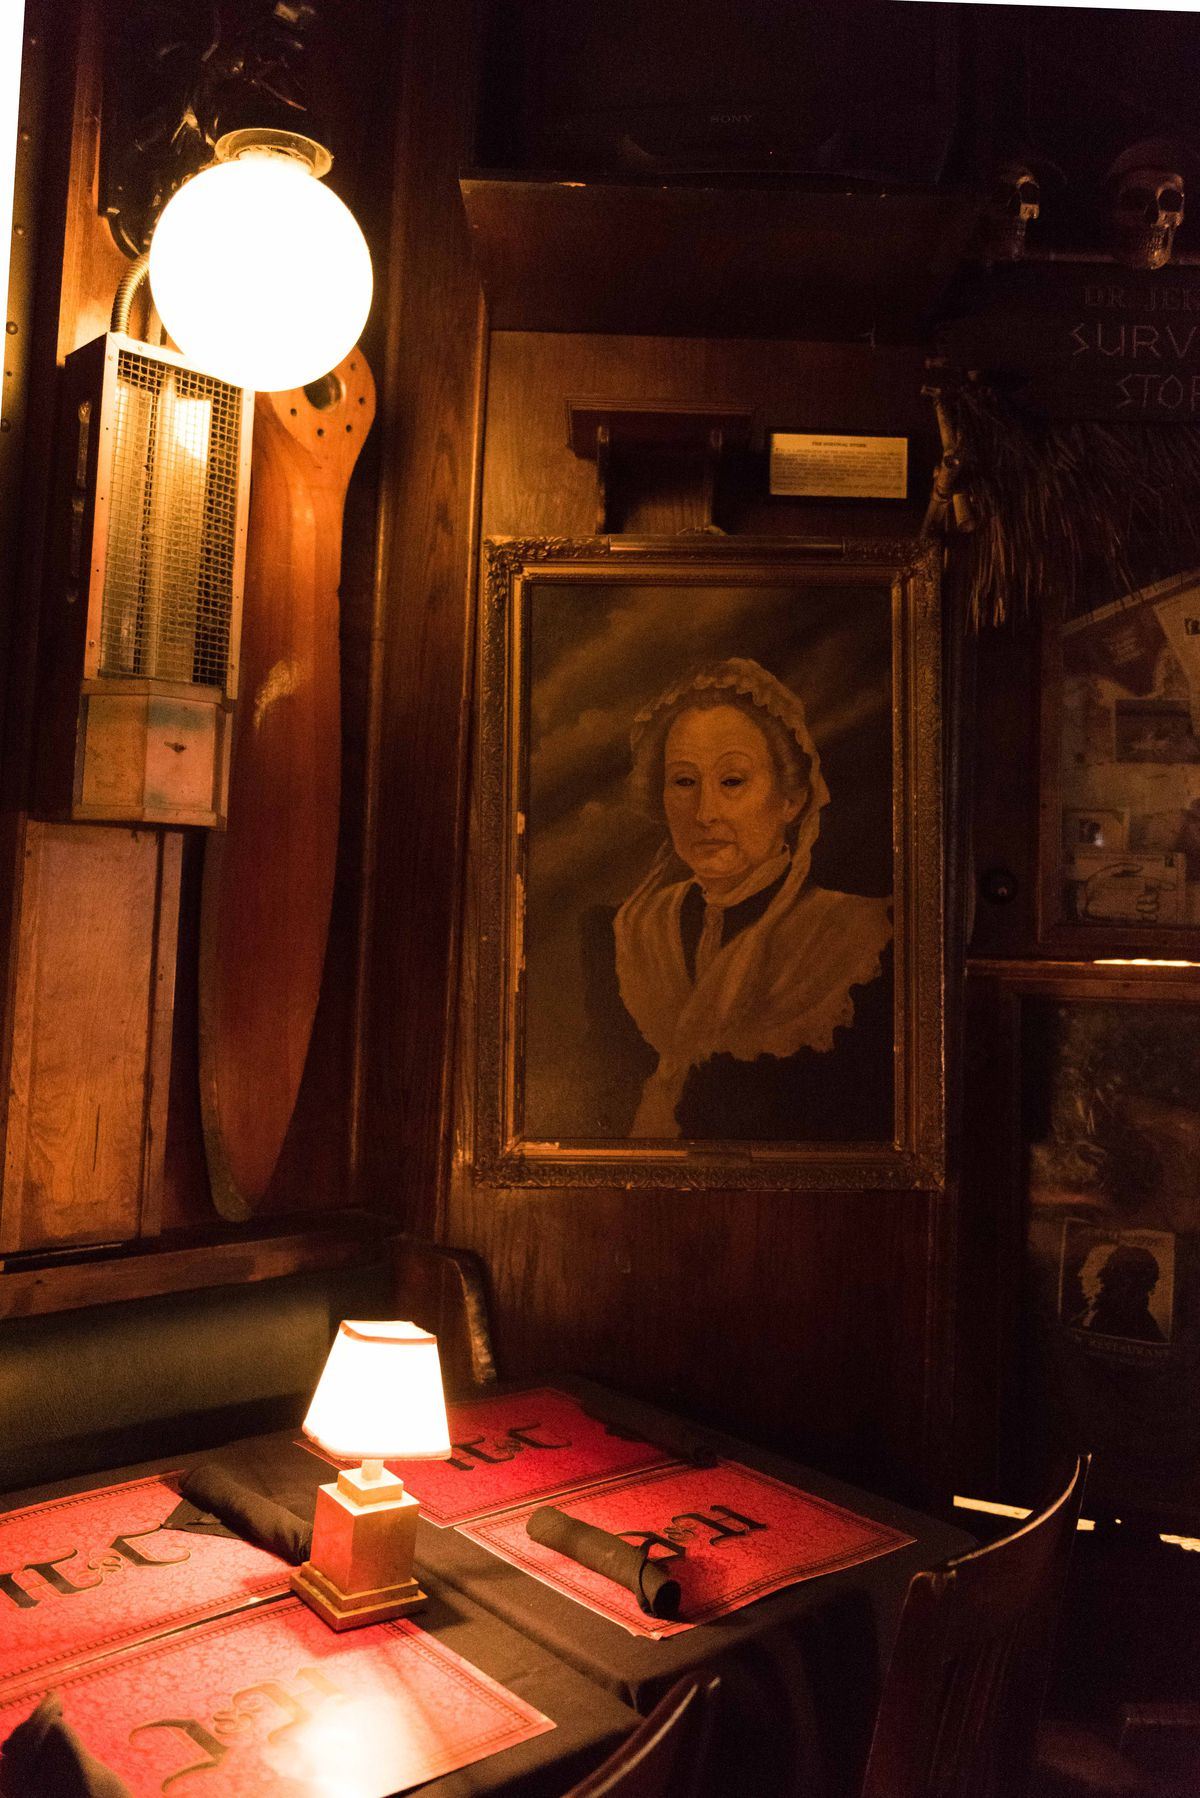 An old portrait looks over a dining table.